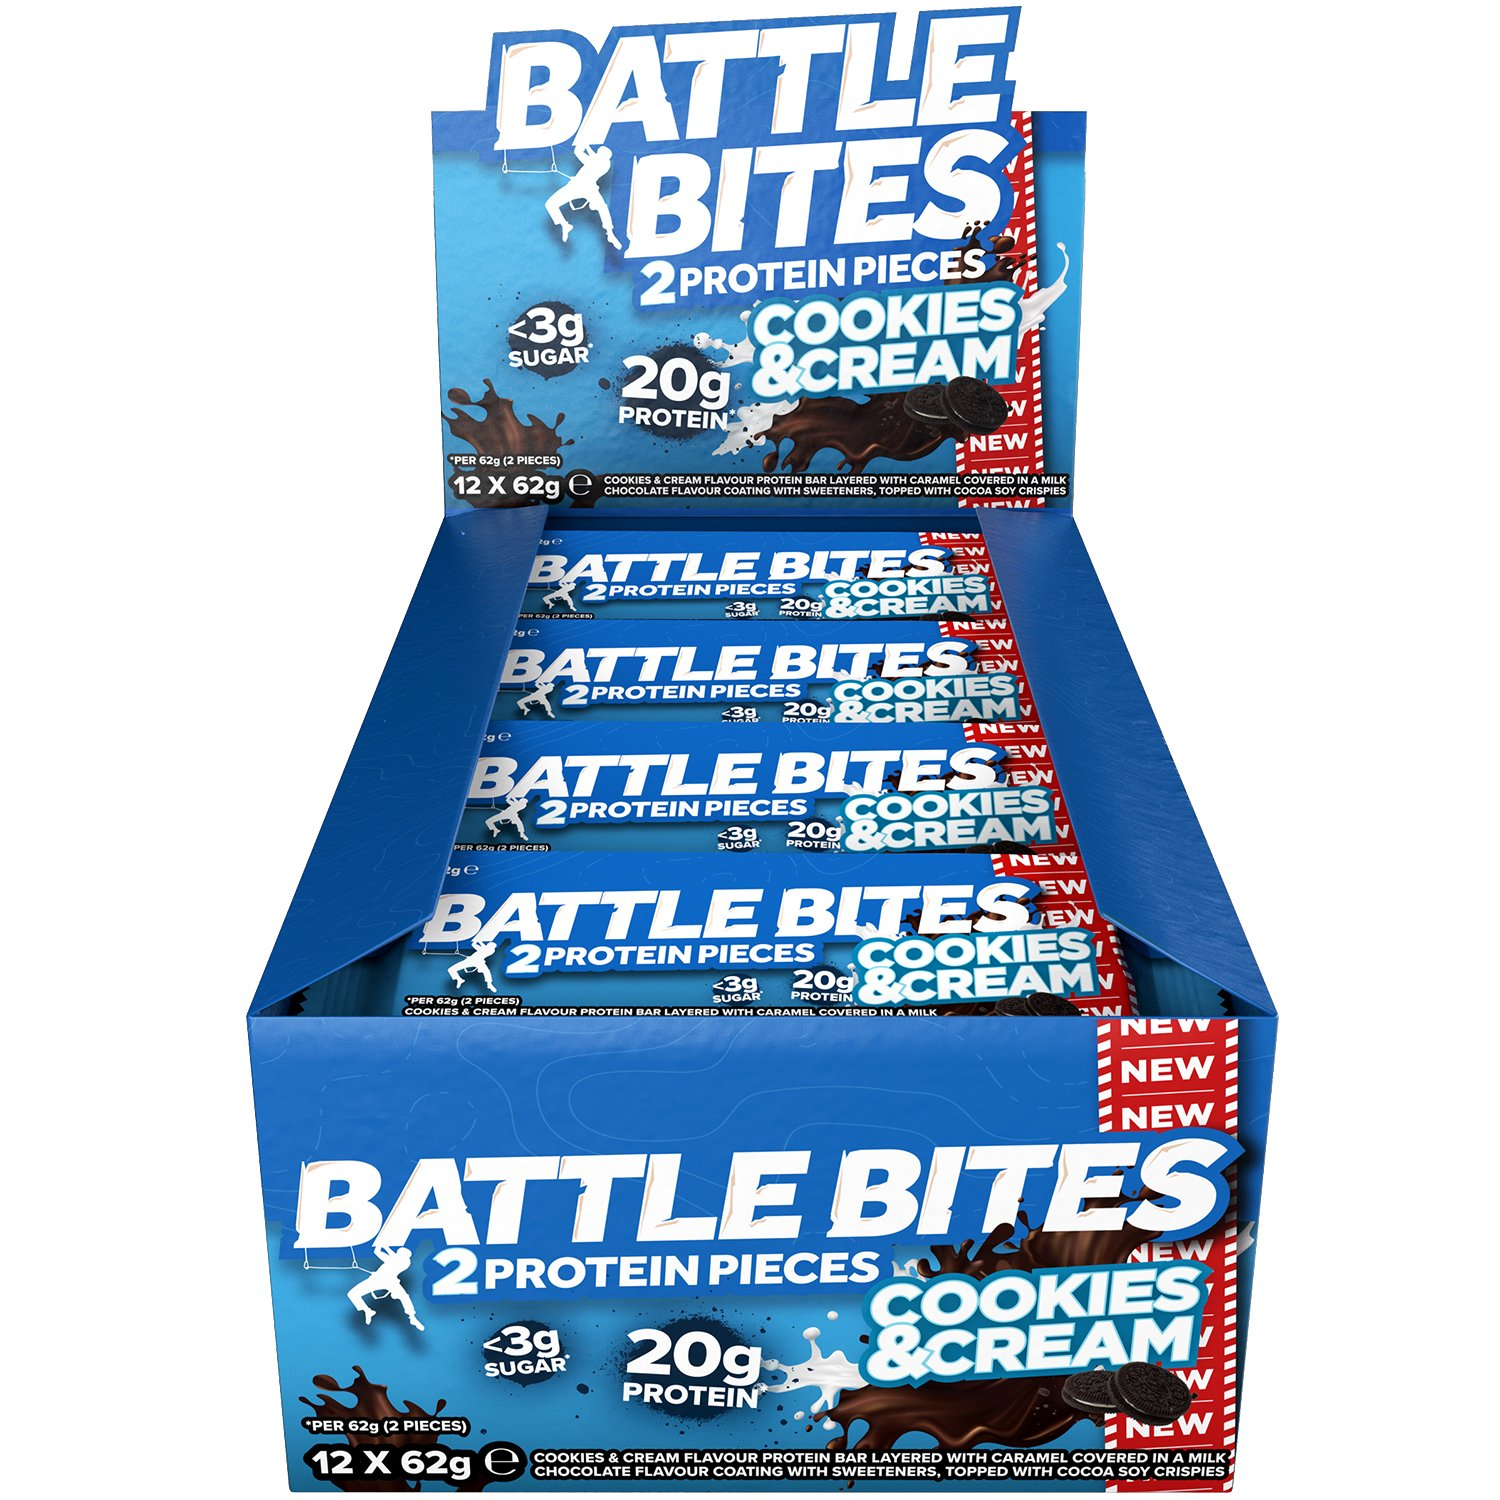 Battle Bites High Protein Bar, Low Carb and Low Sugar Protein Bars, Cookies & Cream, 12 x 62g Bars (2 x 31g Pieces per Bar) Baked by Battle Oats product image